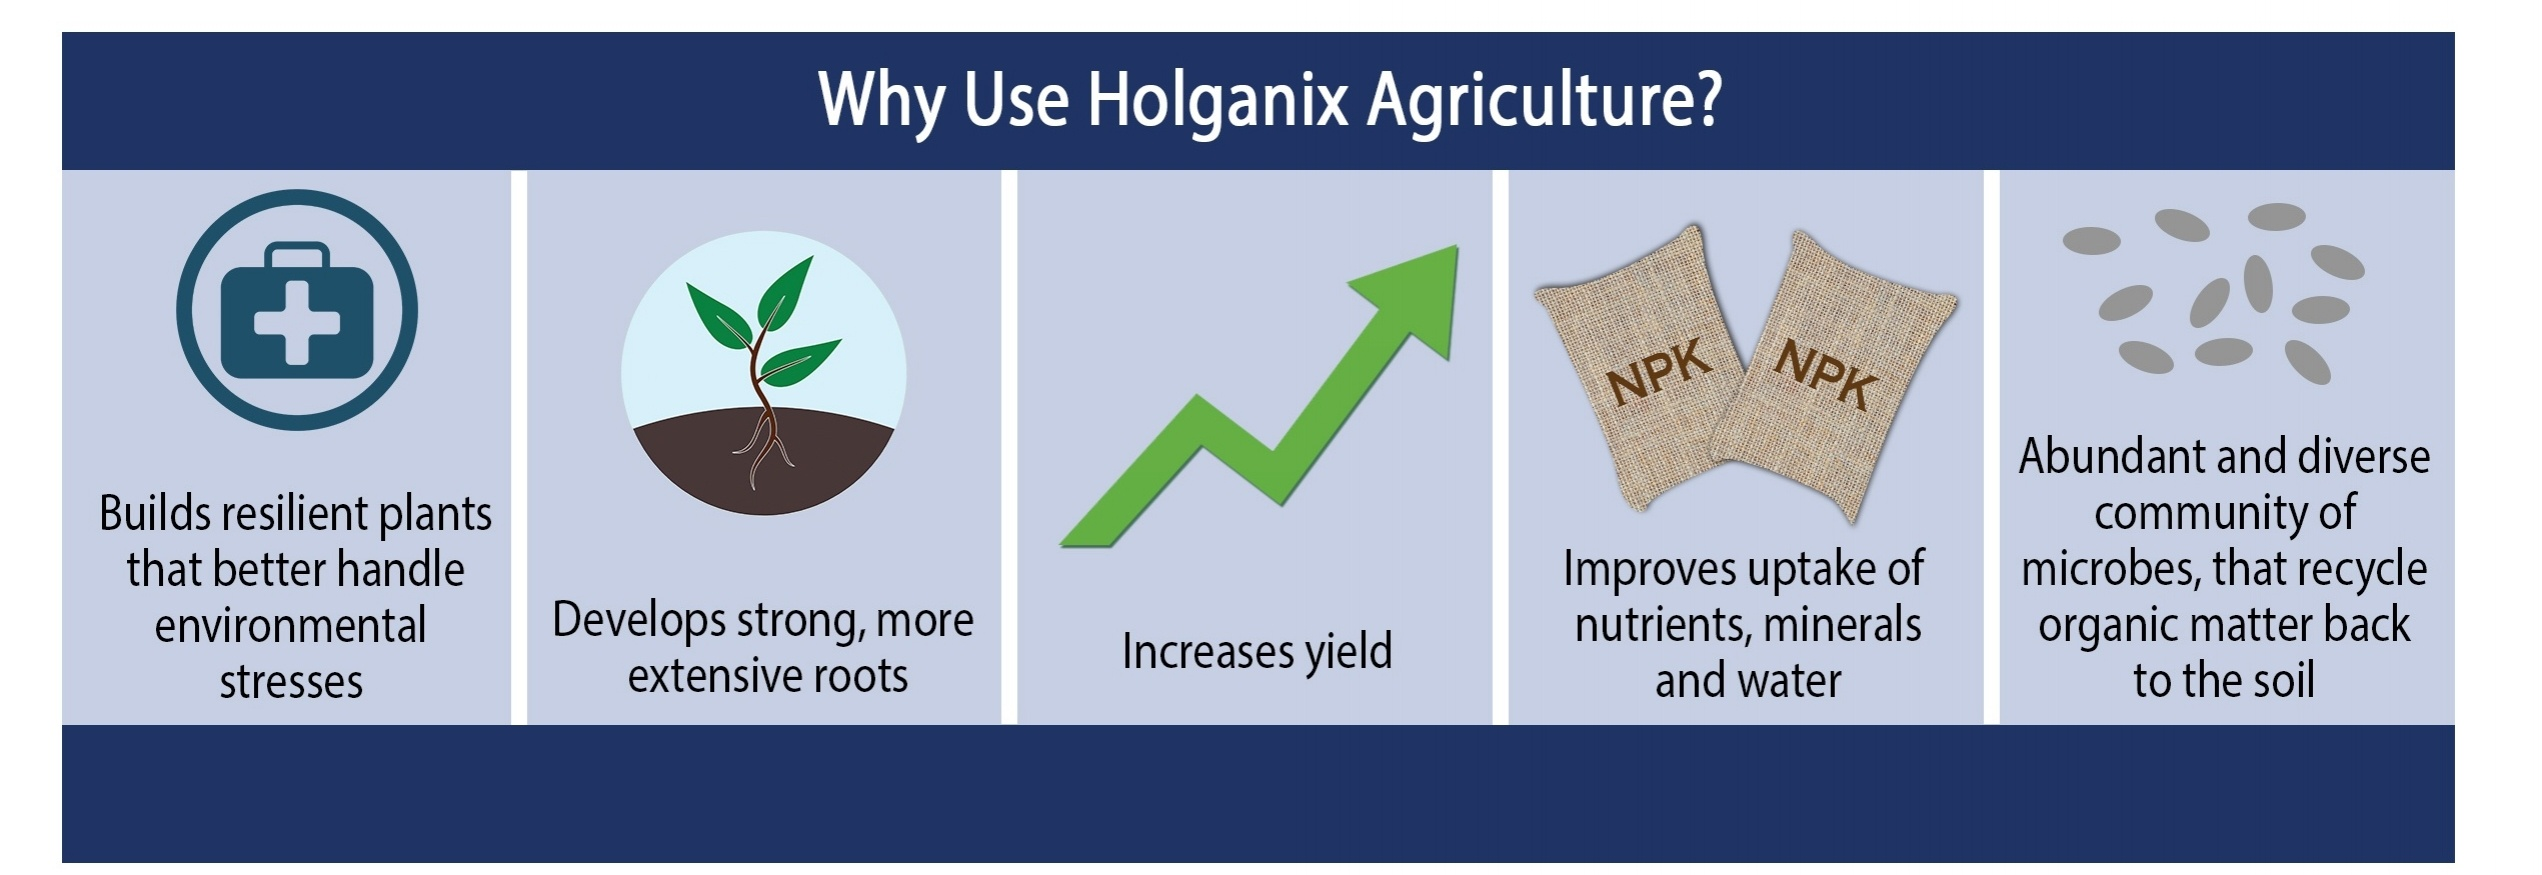 Why use Holganix-587110-edited